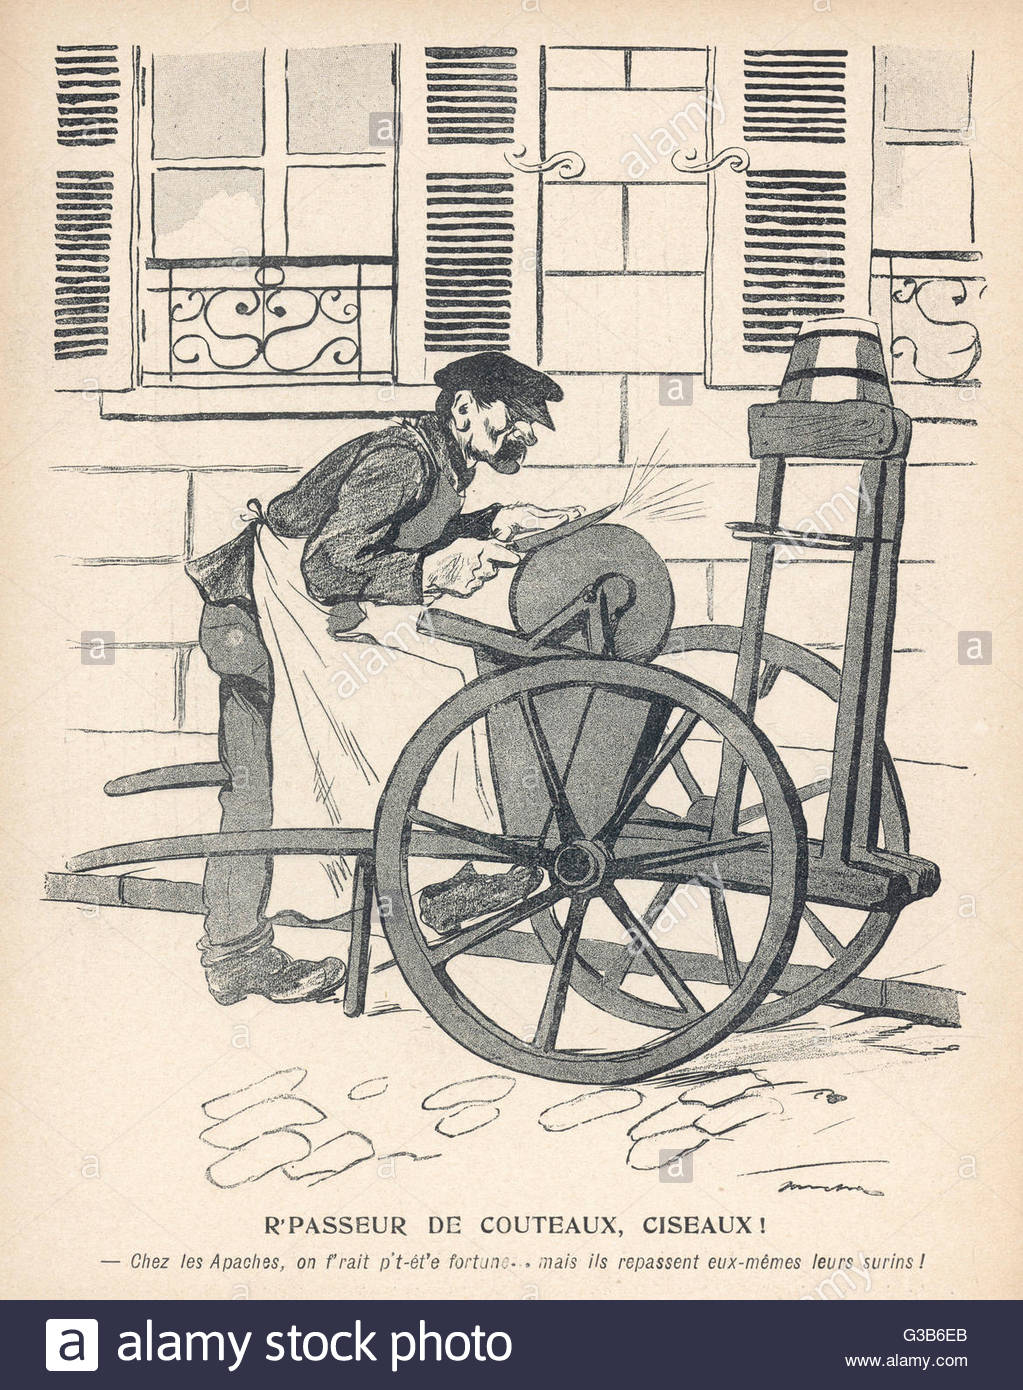 A Man Grinding Knives And Scissors In Paris Date: 1905 Stock Photo.